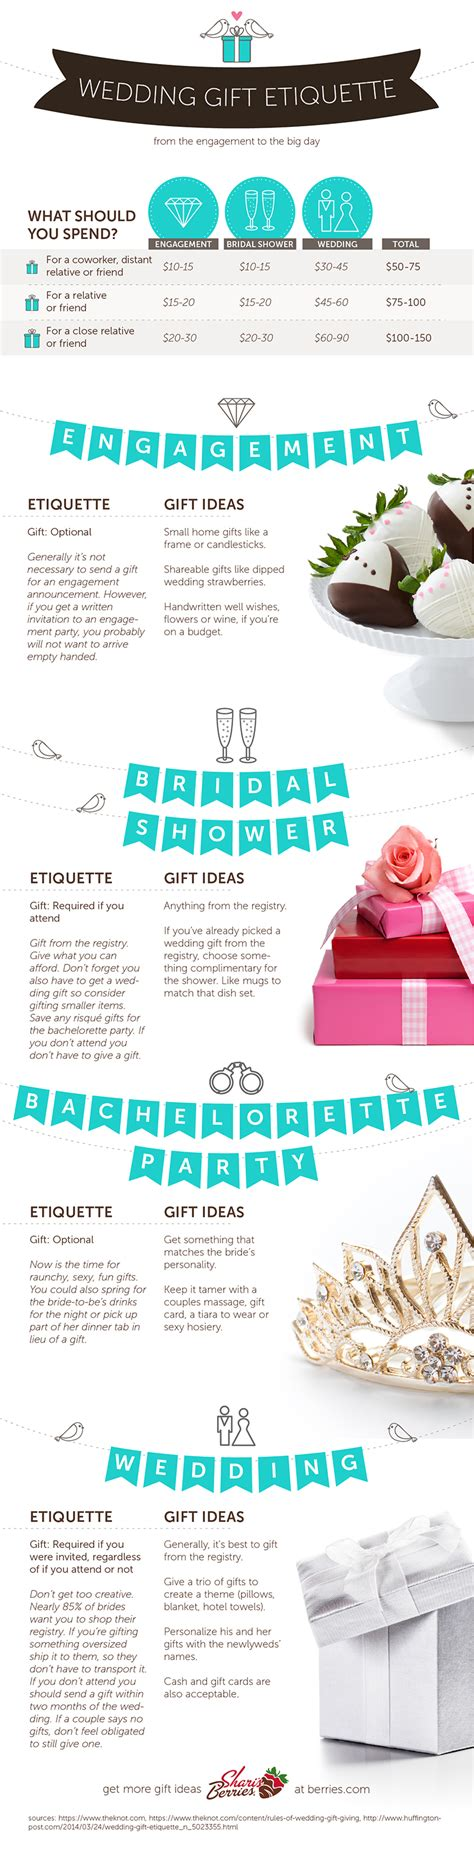 bridal shower guest gift etiquette wedding gift etiquette tips and ideas for your event